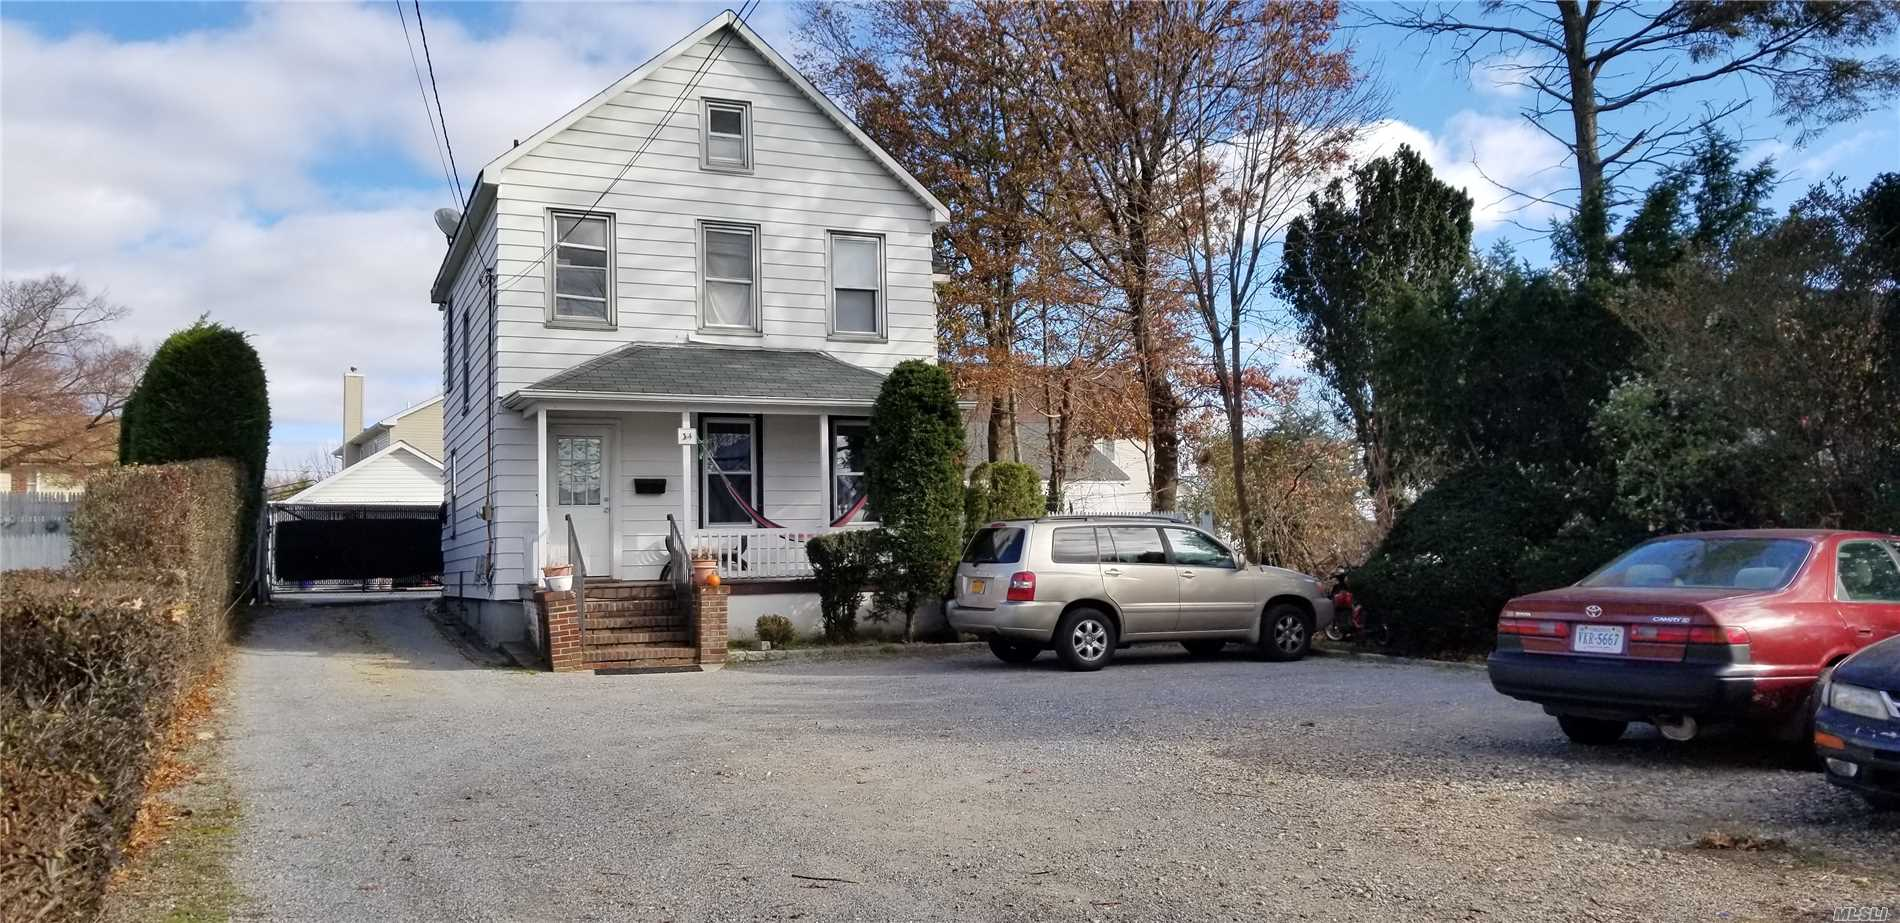 Photo of home for sale at 40 Ellison Ave, Westbury NY